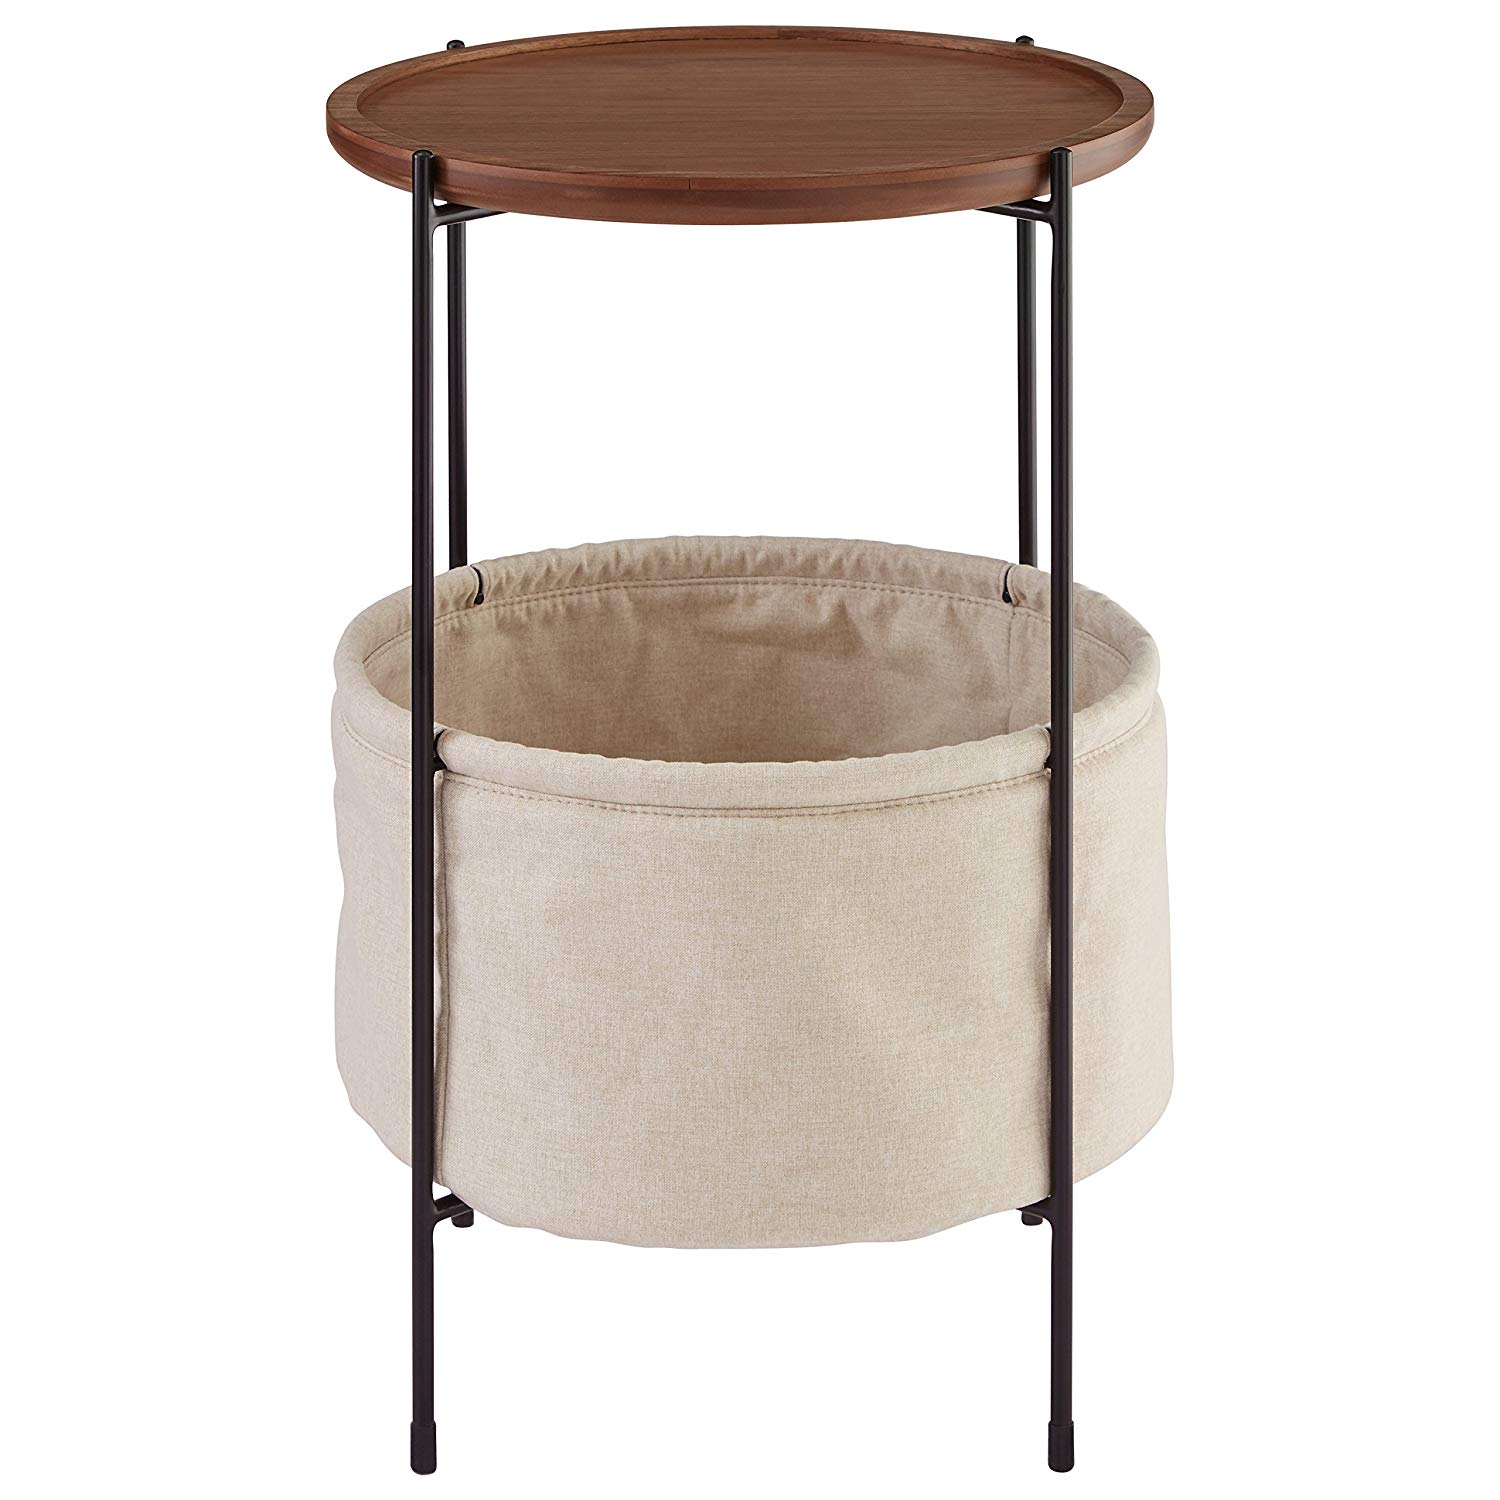 rivet meeks round storage basket side table walnut and small accent with drawer cream fabric kitchen dining circular metal clear crystal lamp west elm console desk target glass